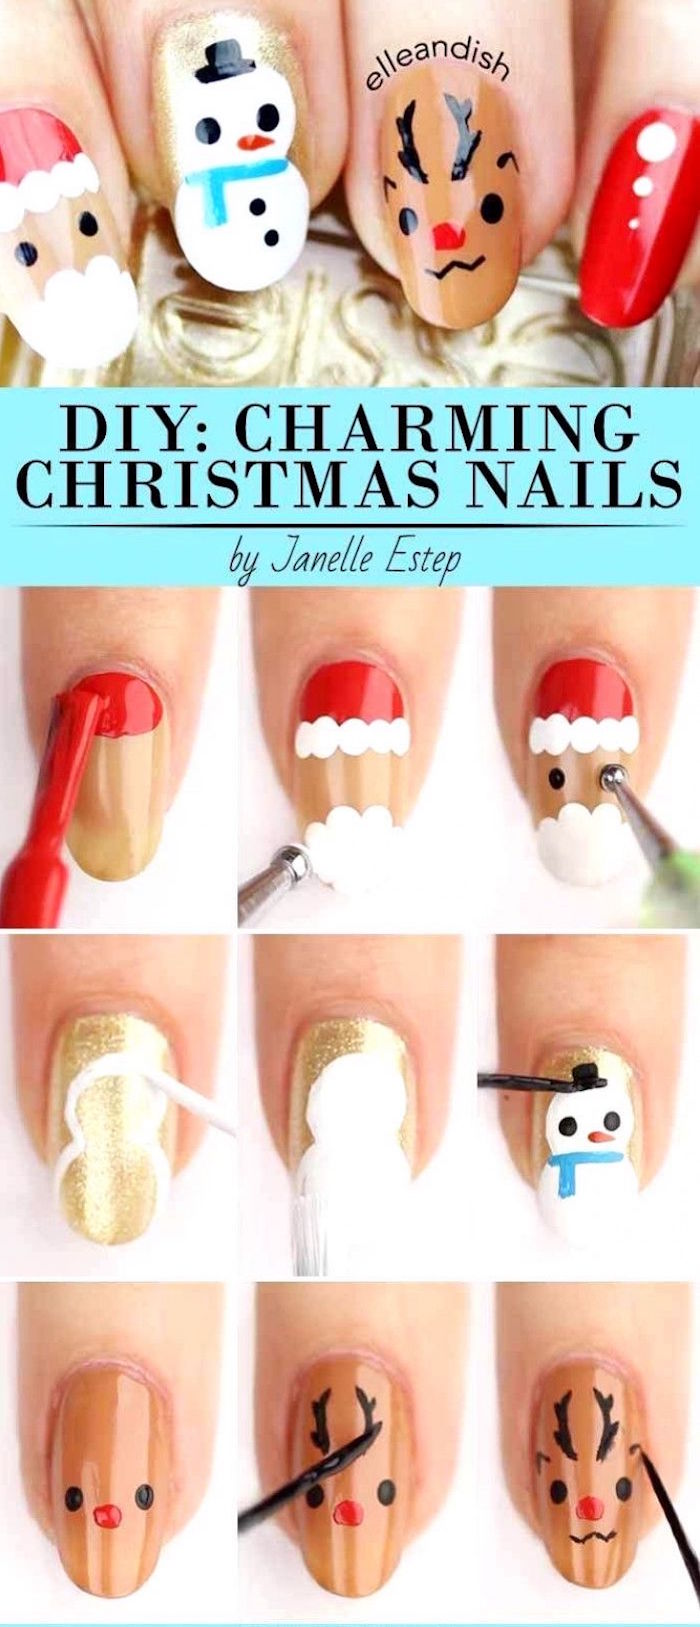 holiday nail designs medium length almond nails with santa snowman and reindeer decorations step by step diy tutorial